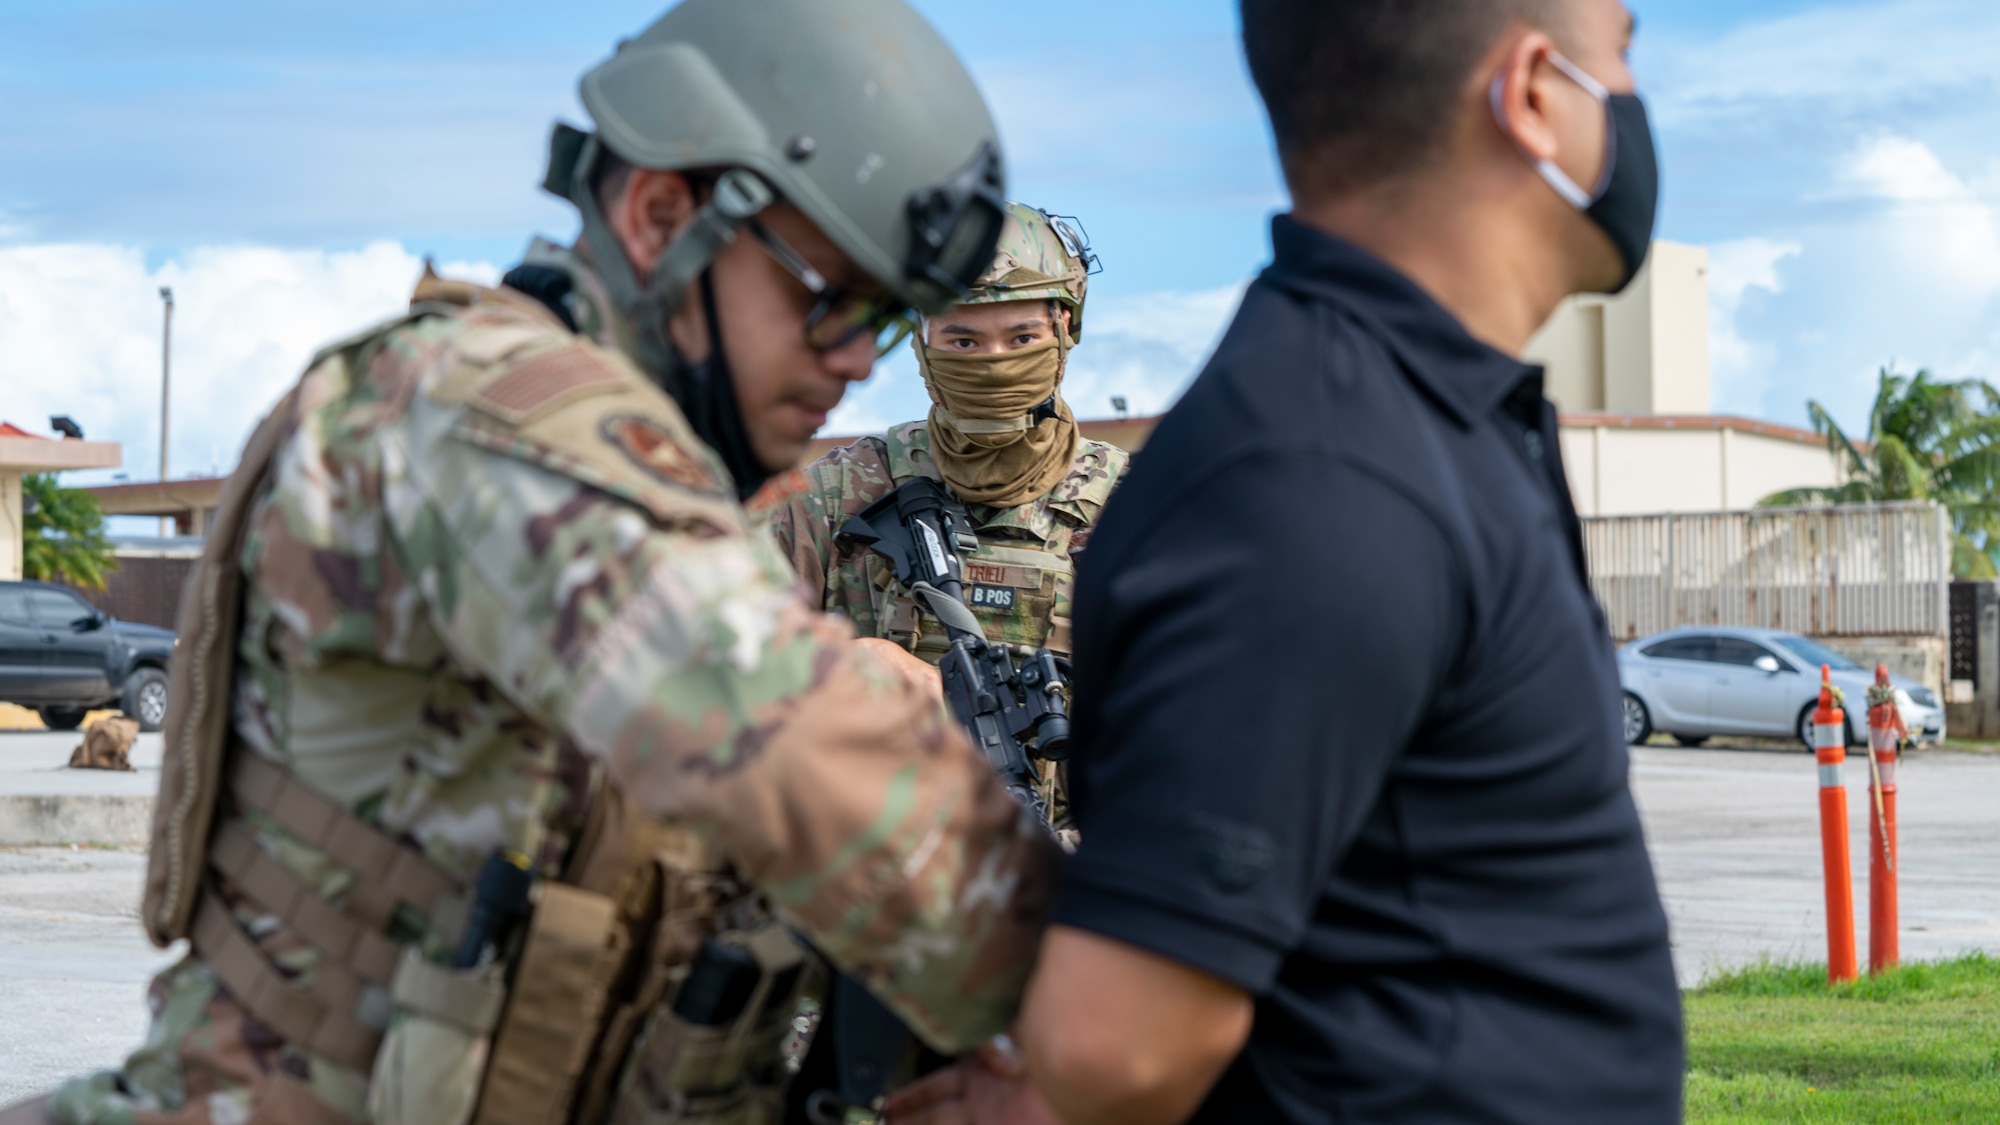 Members of the 736th Security Forces Squadron practice handcuffing a suspect during a flightline attack scenario as part of Exercise Sling Stone 21-1 on Nov. 5, 2020 at Andersen Air Force Base, Guam. Exercise Sling Stone is an annual anti-terrorism force protection exercise. The exercise involved multiple training scenarios intended to prepare service members to respond to emergency situations. (U.S. Air Force photo by Tech. Sgt. Esteban Esquivel)